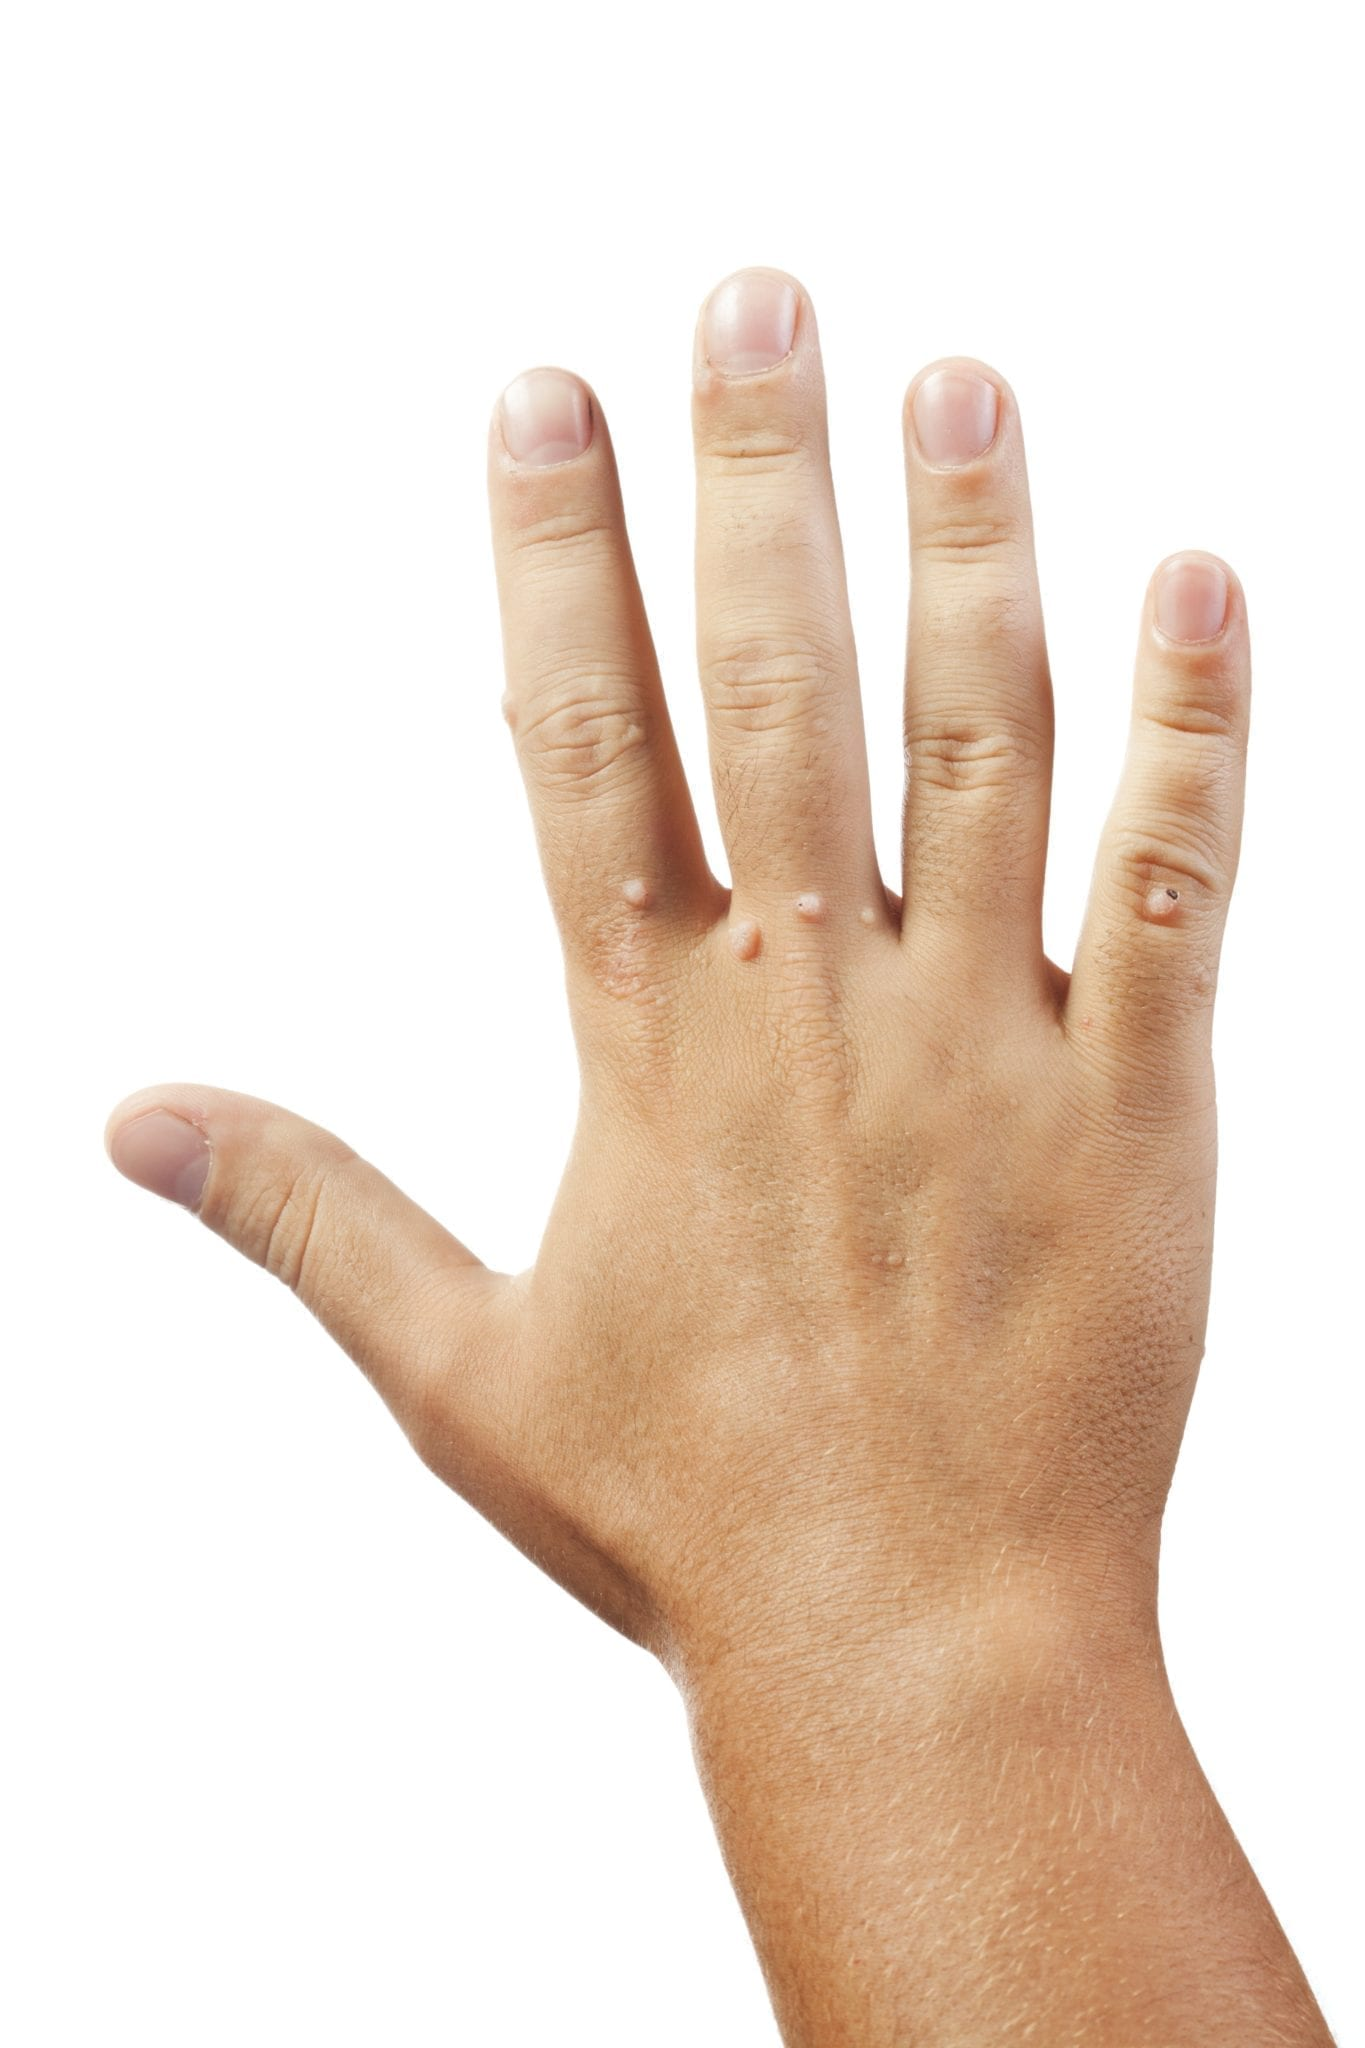 warts on hands are caused by papiloame oncogene